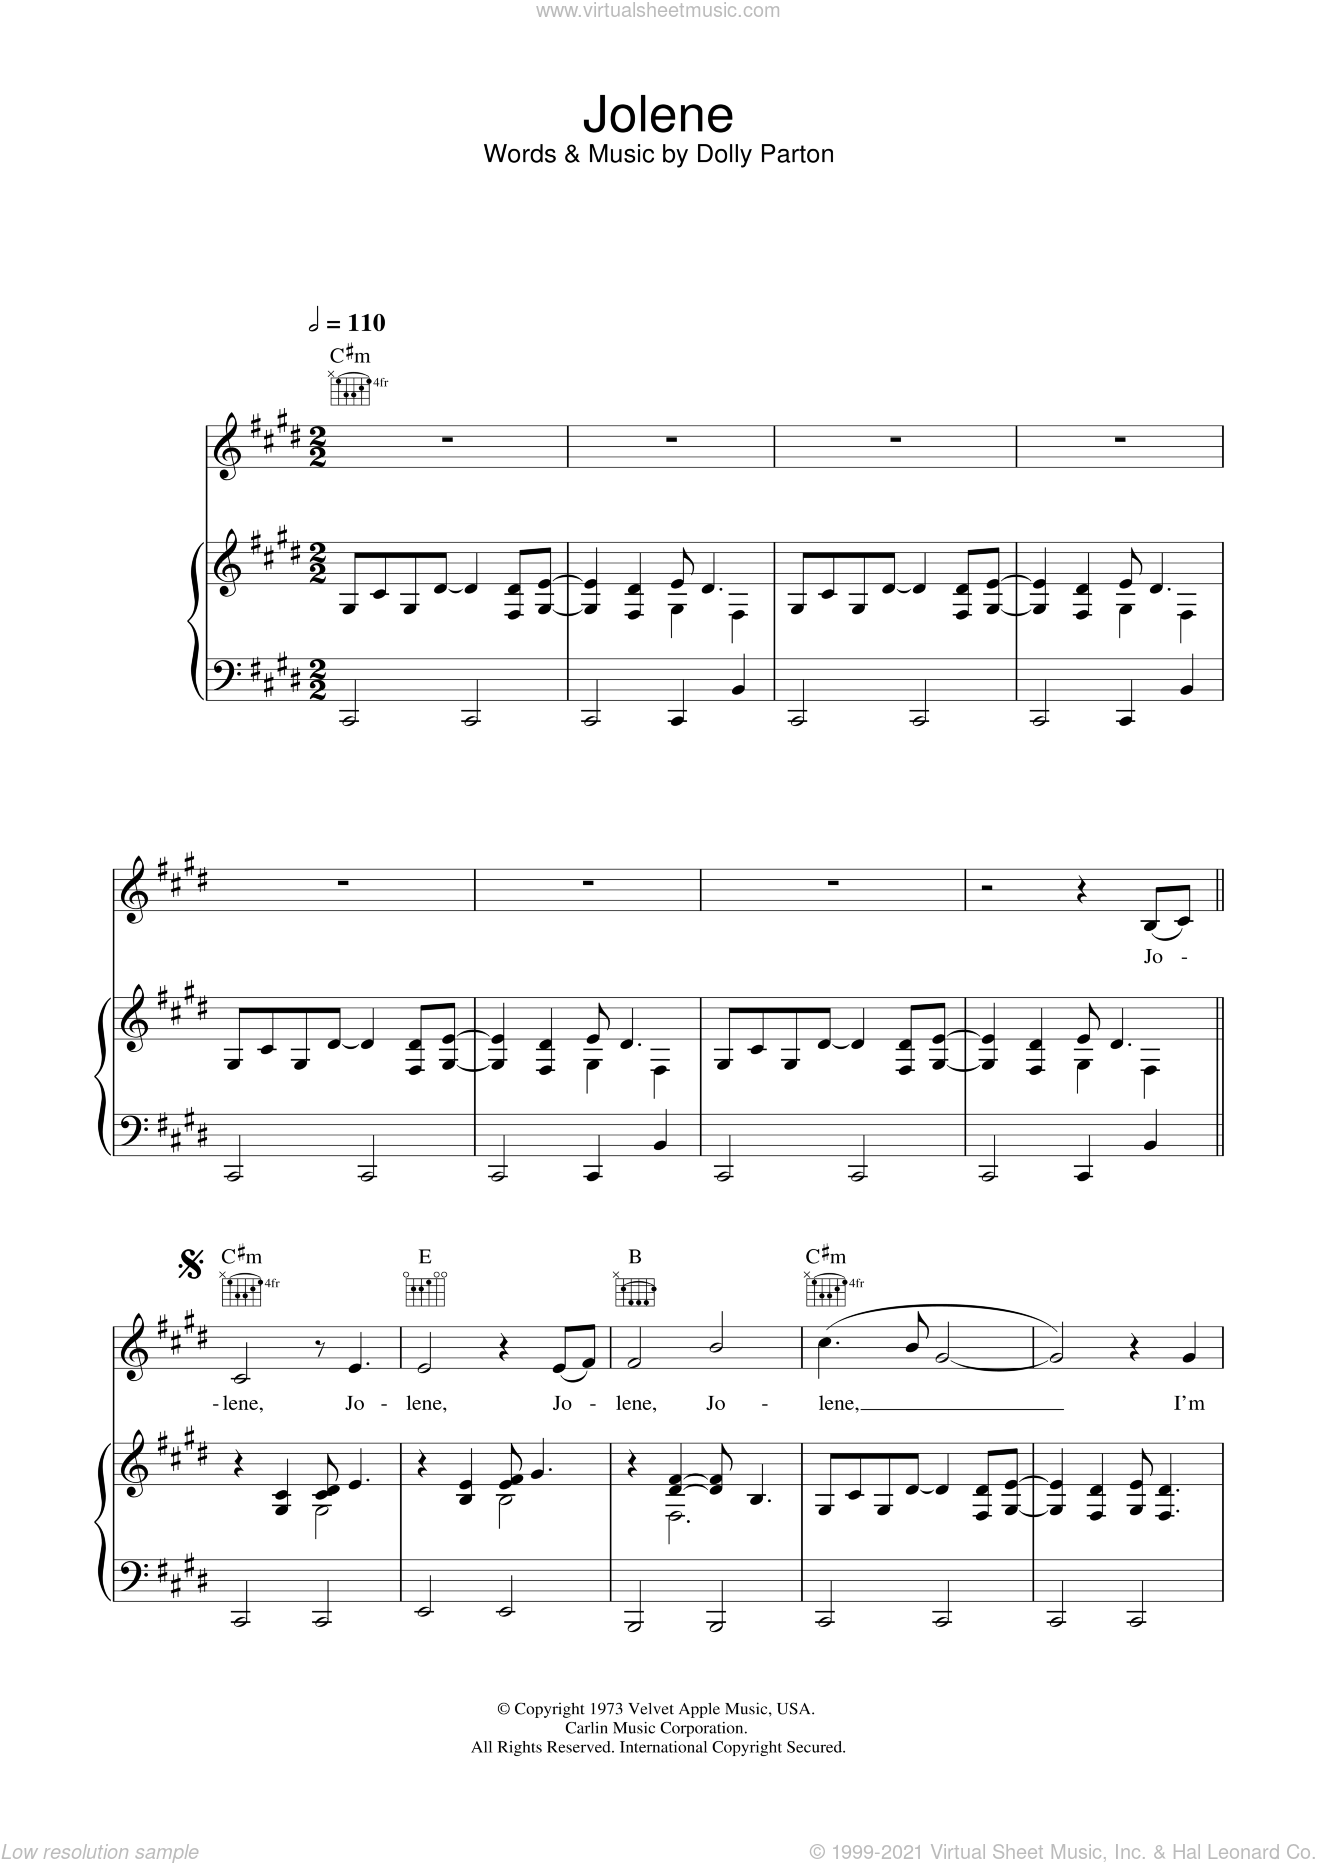 Jolene sheet music for voice, piano or guitar by Dolly Parton